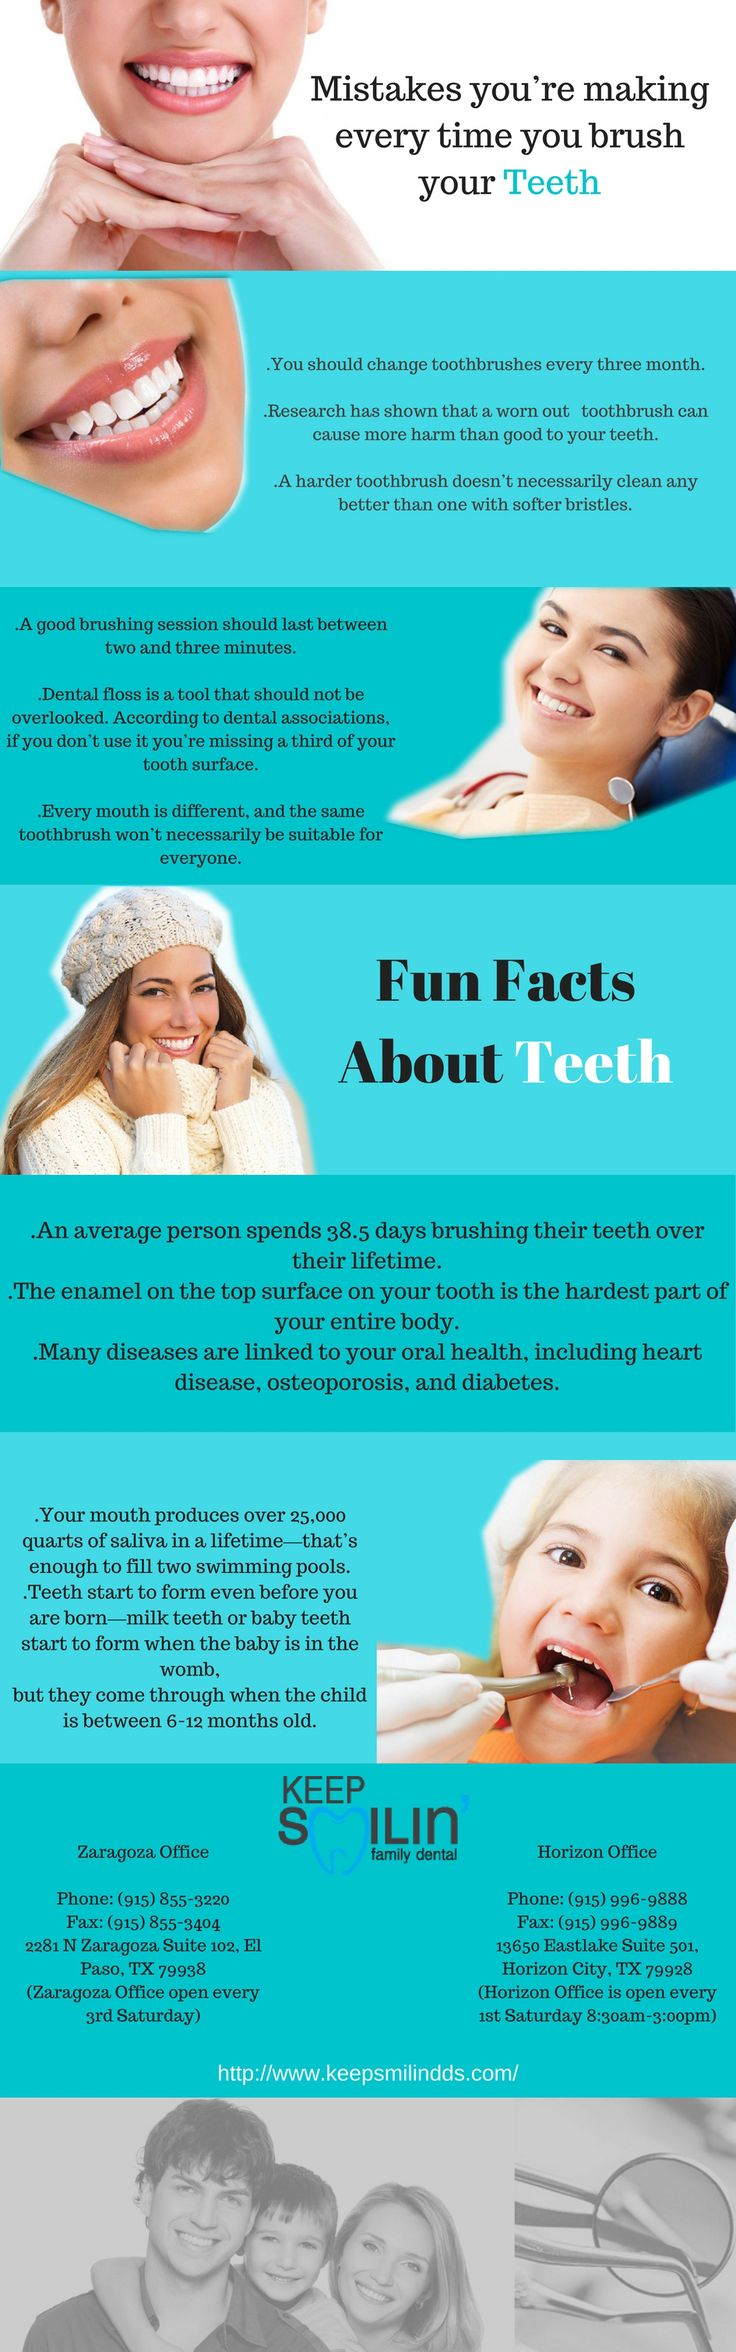 Keep Smilin' Family Dental offers EI Paso Dental Services at very affordable prices. Call us at (915) 855-3220 to schedule your appointment